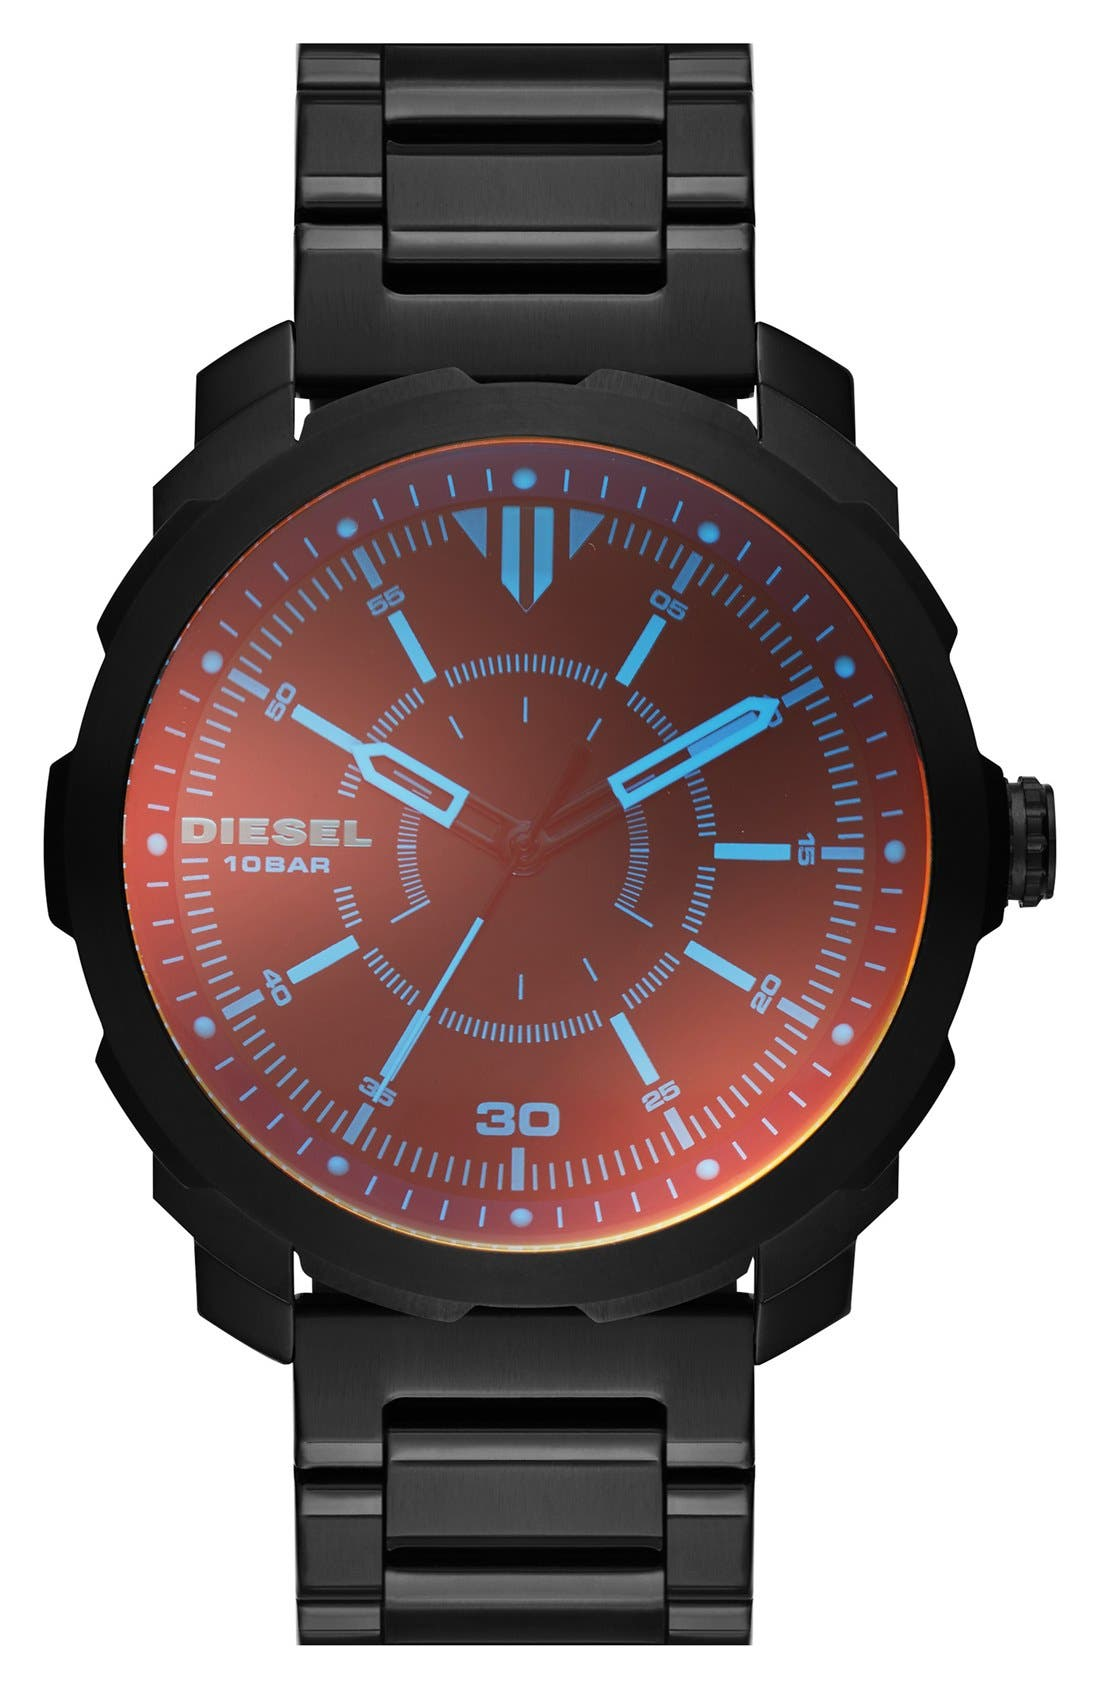 DIESEL® 'Mac 3' Bracelet Watch, 46mm